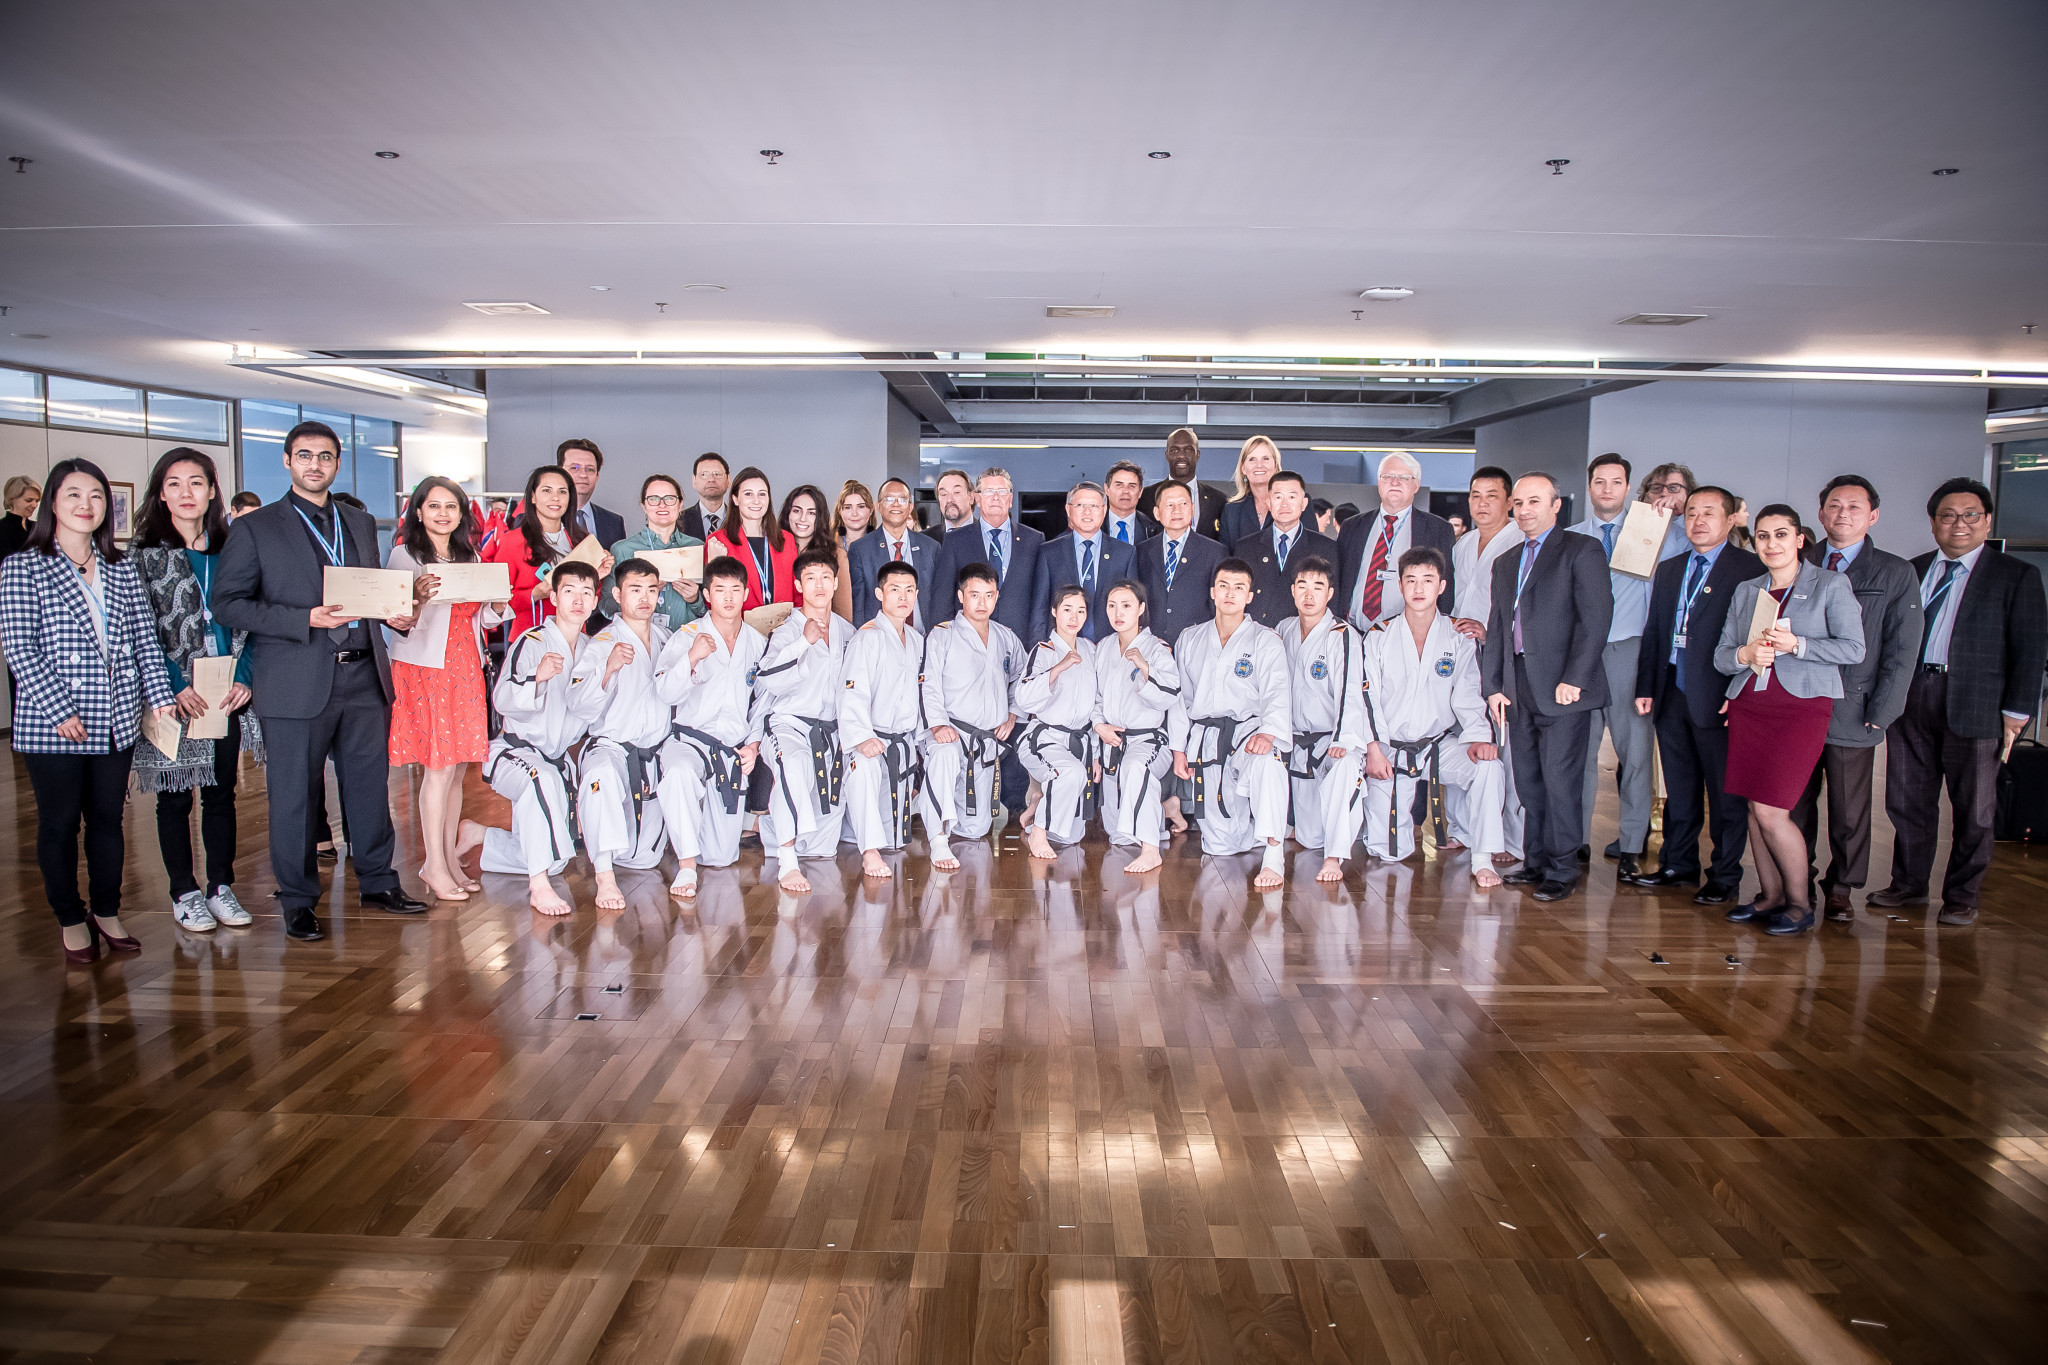 The demonstration was part of the World Summit on the Information Society Forum ©World Taekwondo